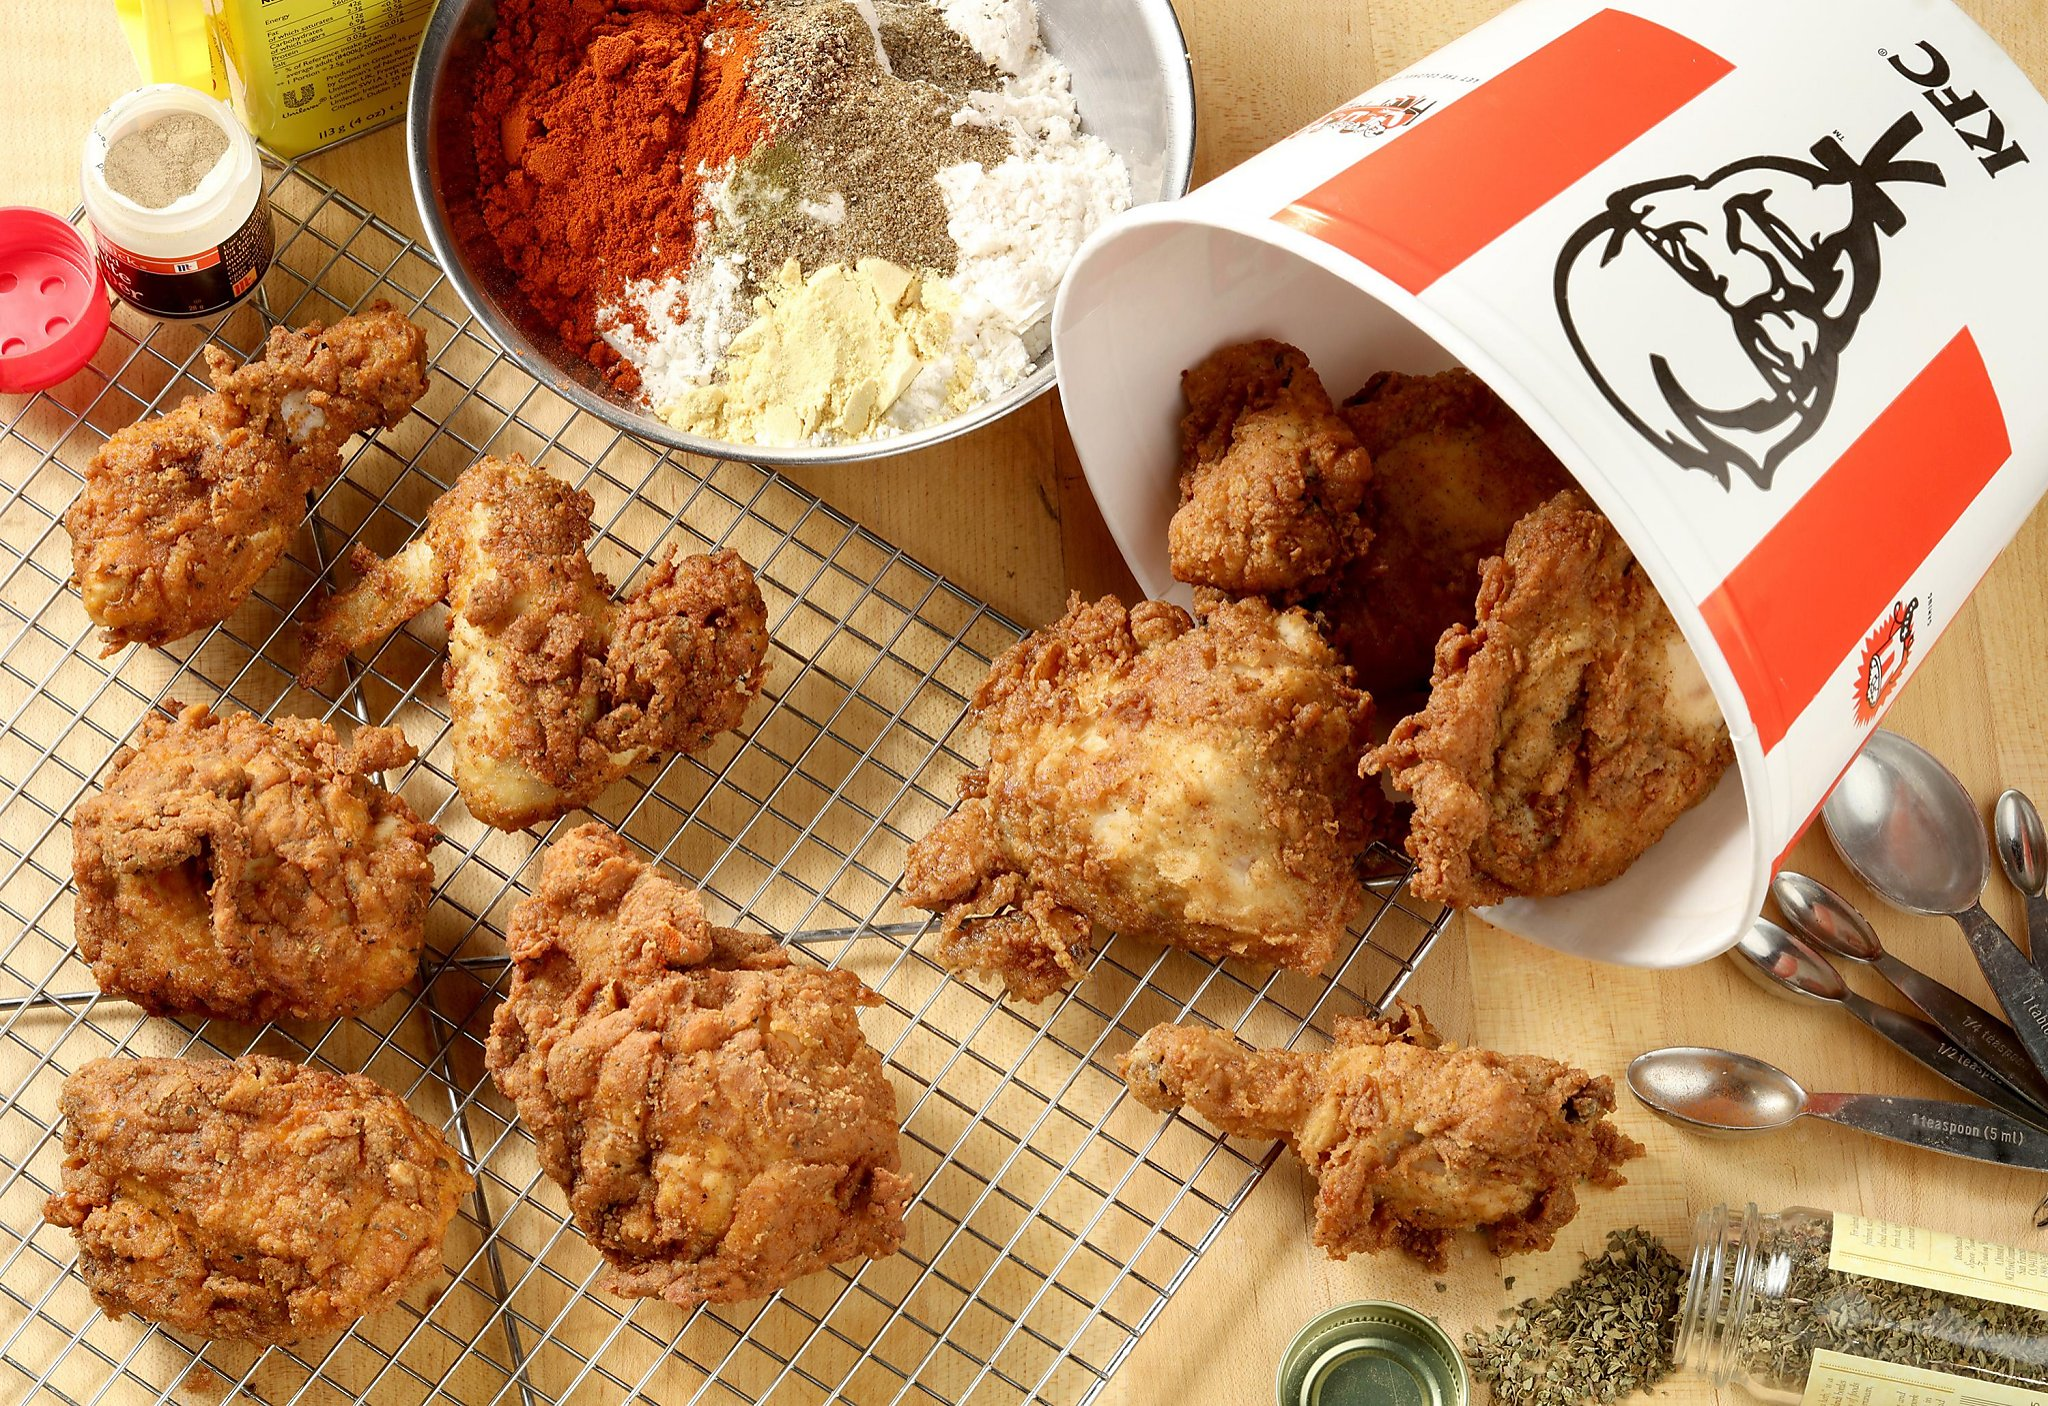 KFC will experiment with faux-meat fried chicken in Britain - San